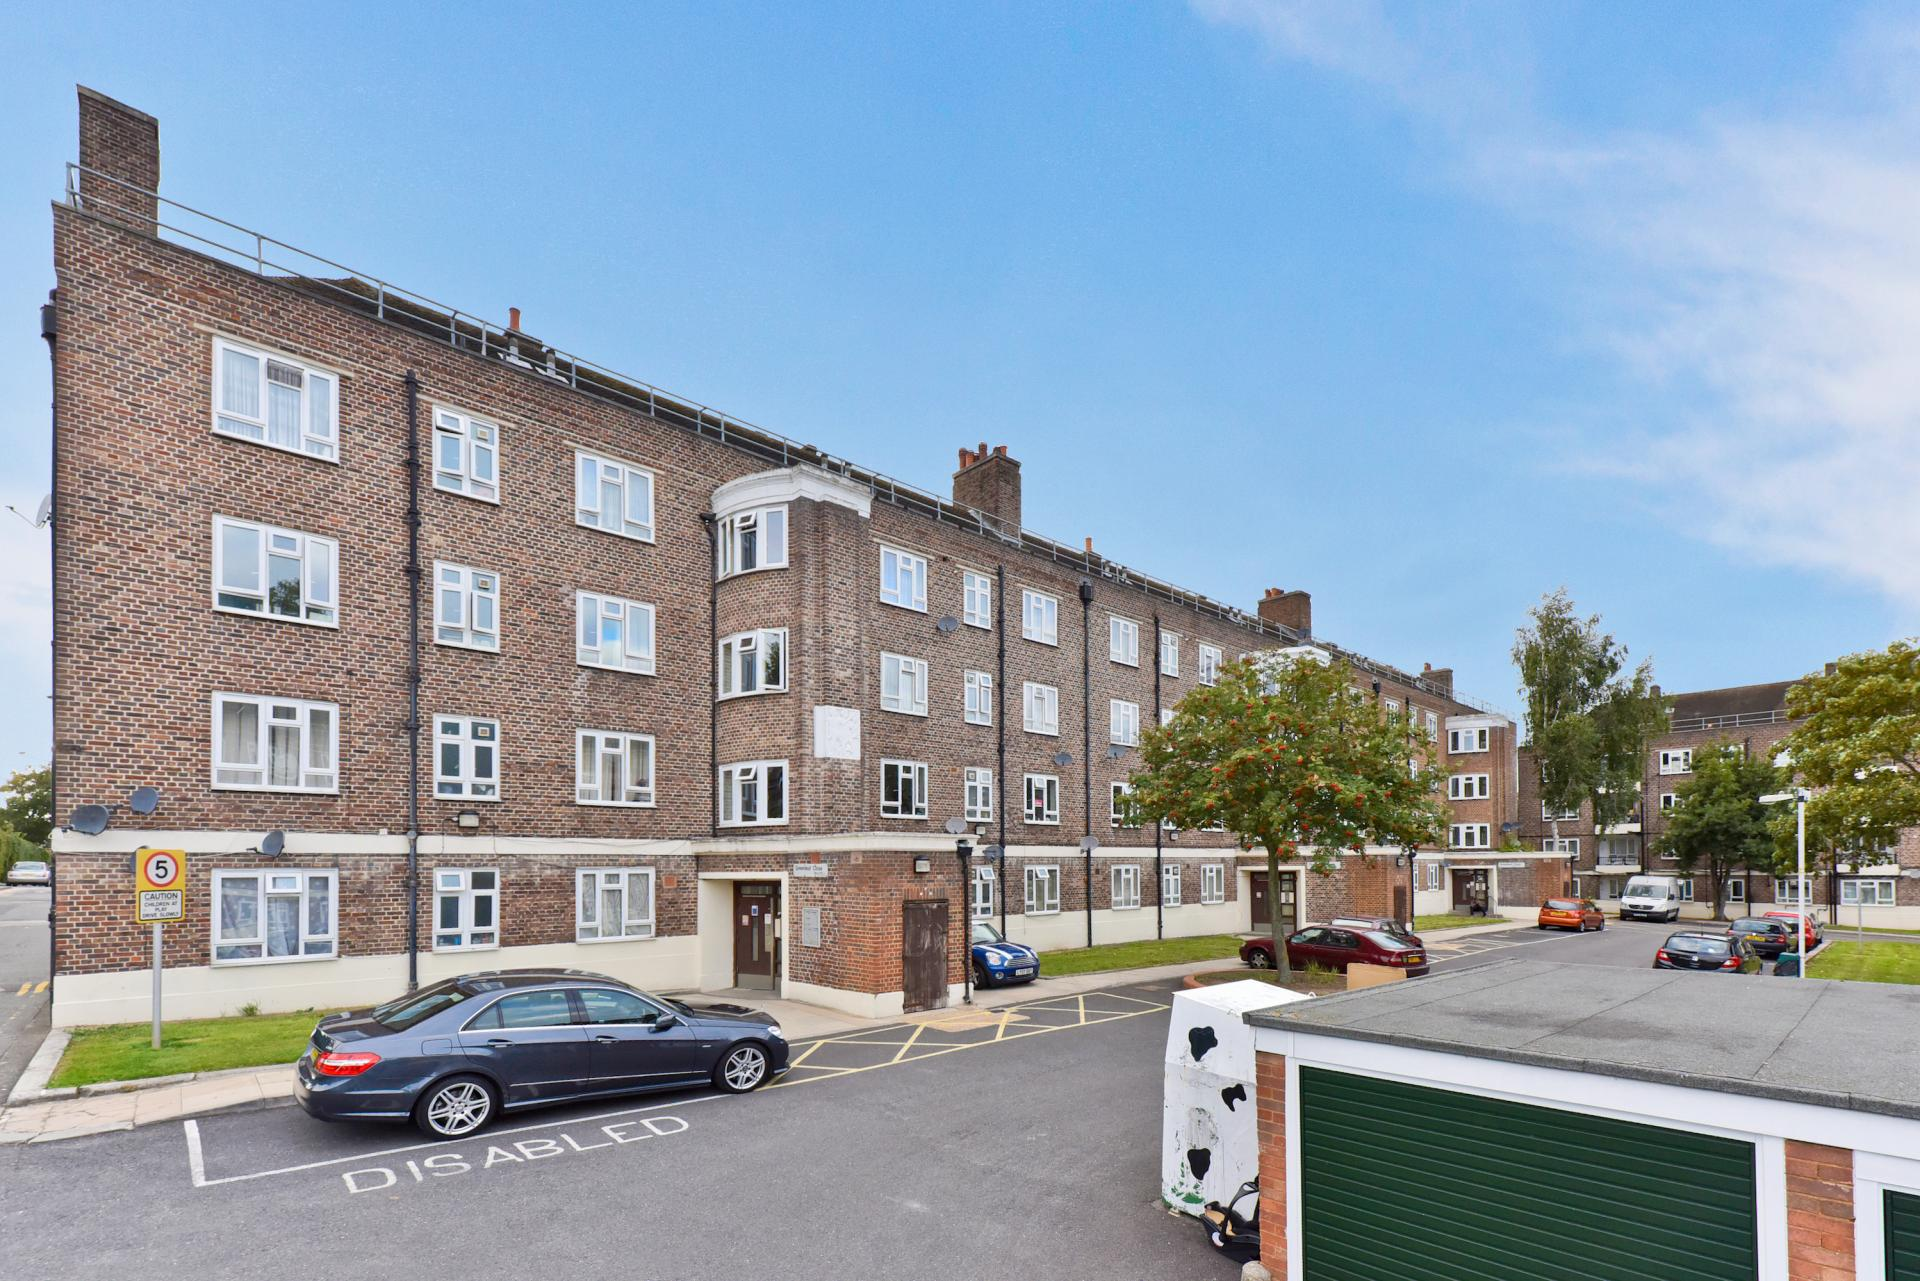 Auction Property For Sale South East London